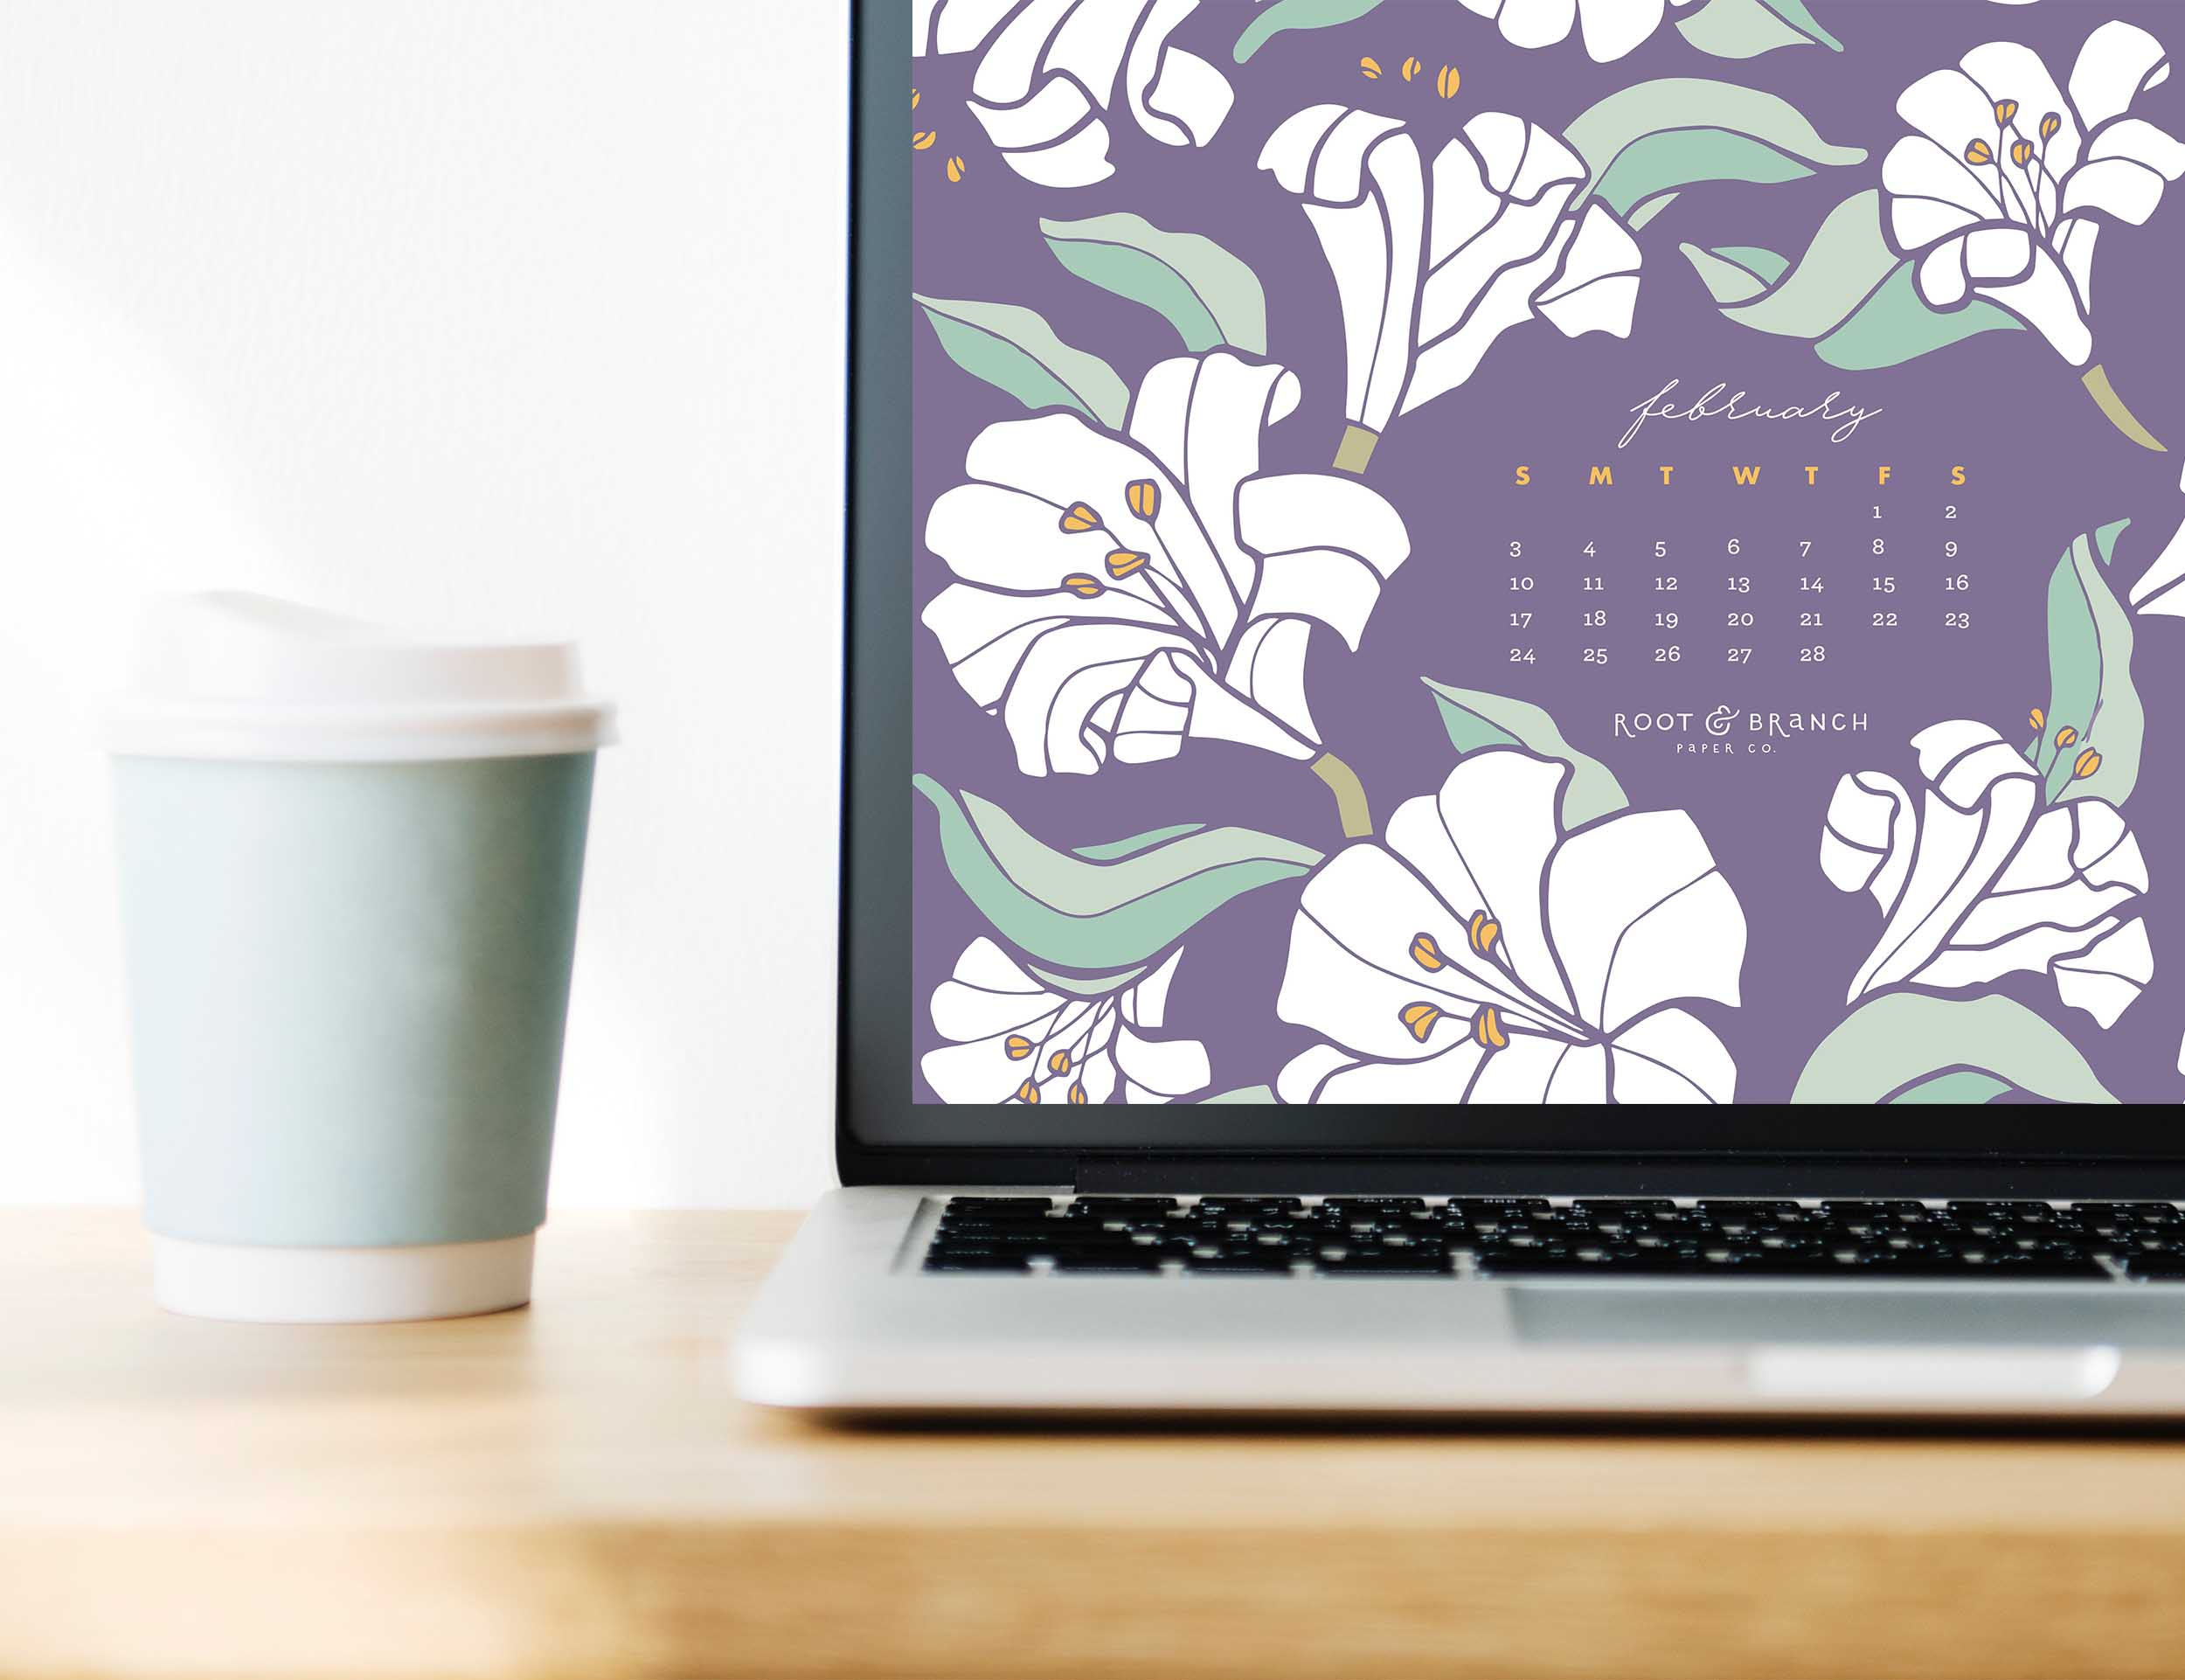 February 2019 Calendar Wallpaper, Free Digital Desktop Wallpaper, Illustrated Floral Desktop Calendar by Root & Branch Paper Co.